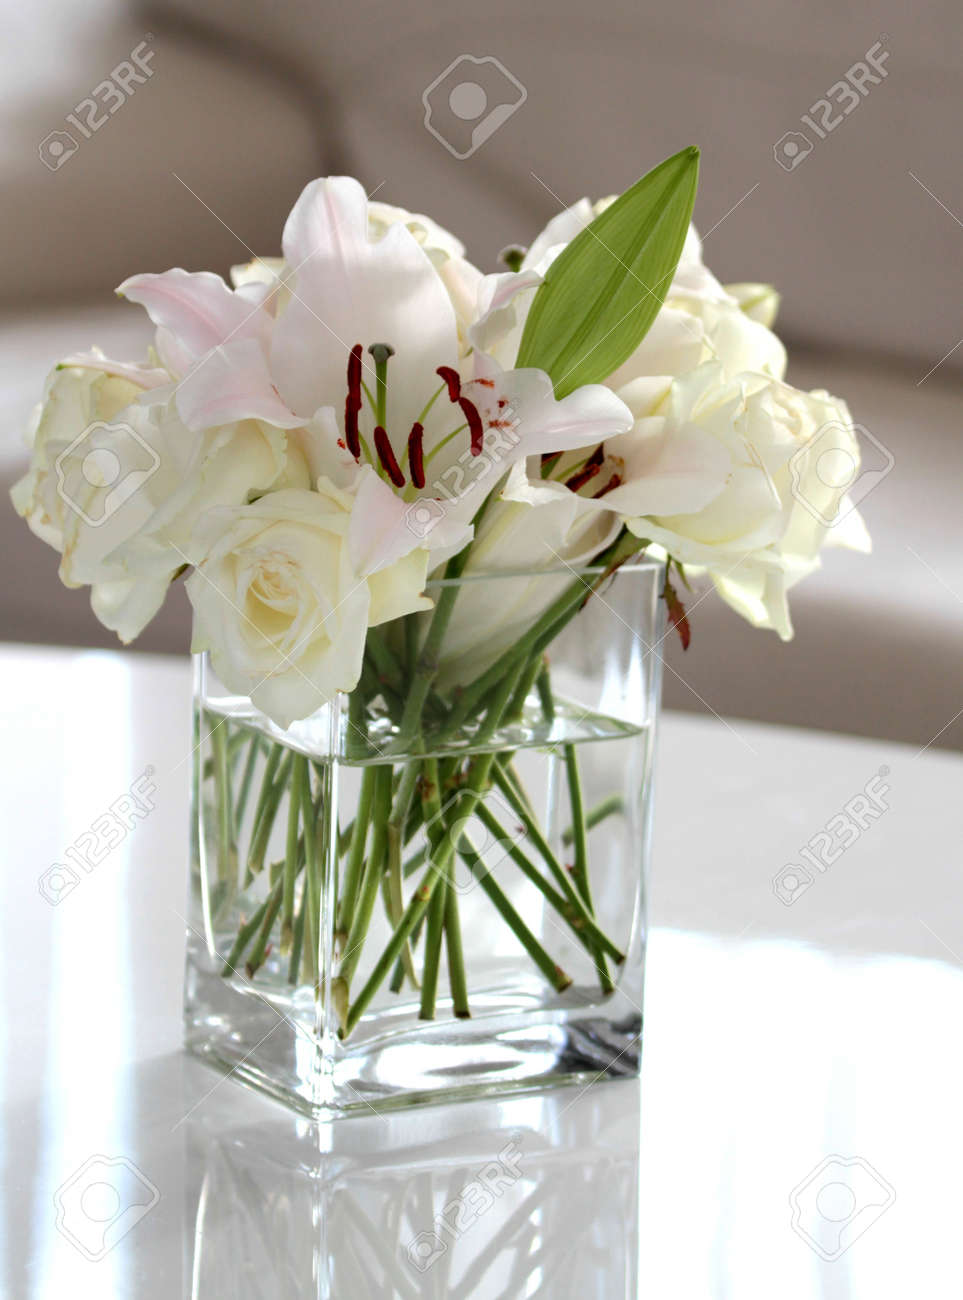 White Flowers In A Vase Stock Photo Picture And Royalty Free Image